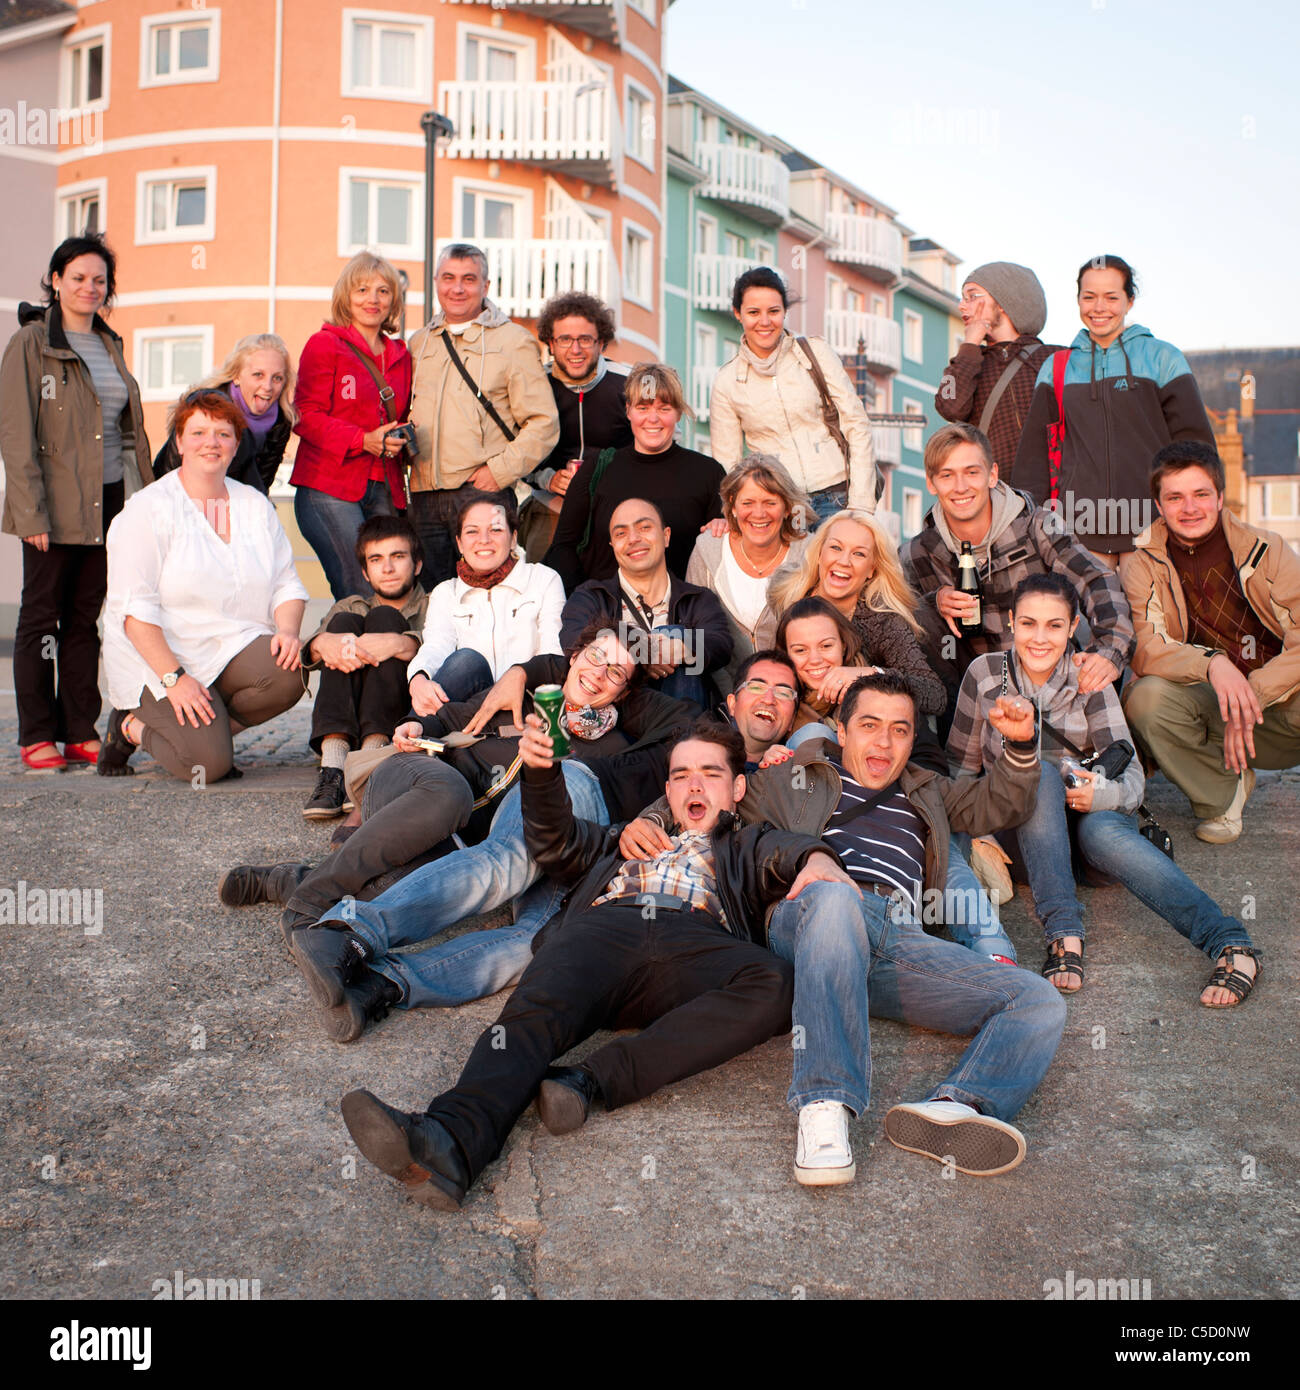 a group of language school students celebrating the end of their course Aberystwyth Wales UK - Stock Image